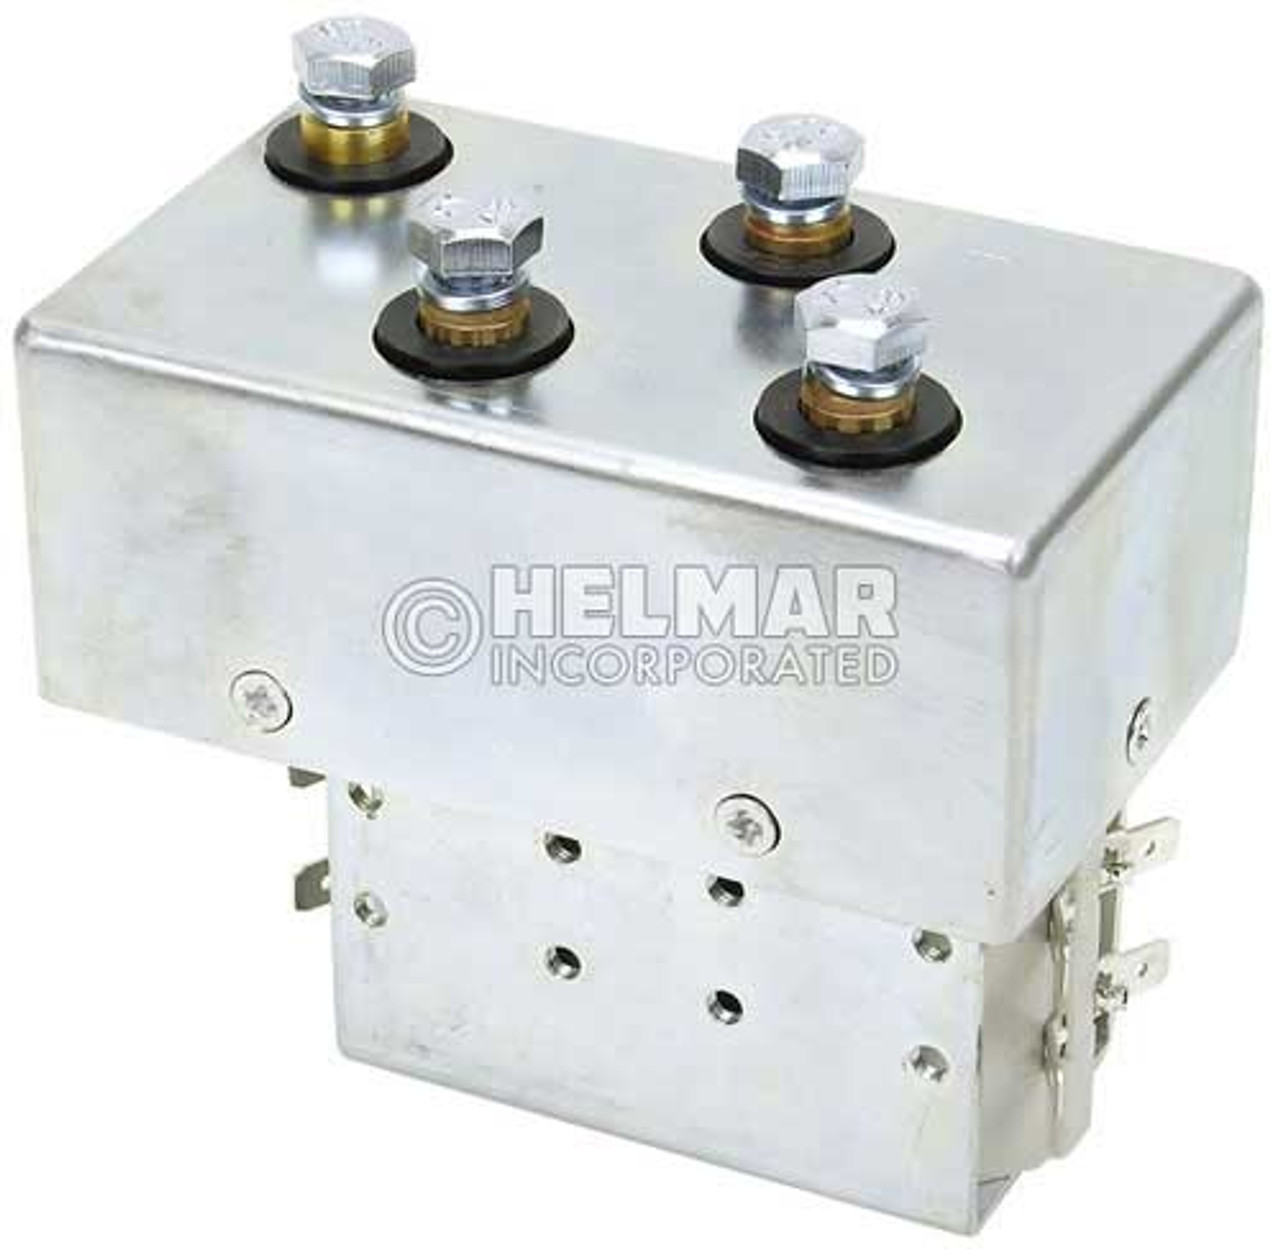 CTR-24-307 24 Volt 250 Amp Contactor, Double Pole - Double Throw - Intermittent Coil